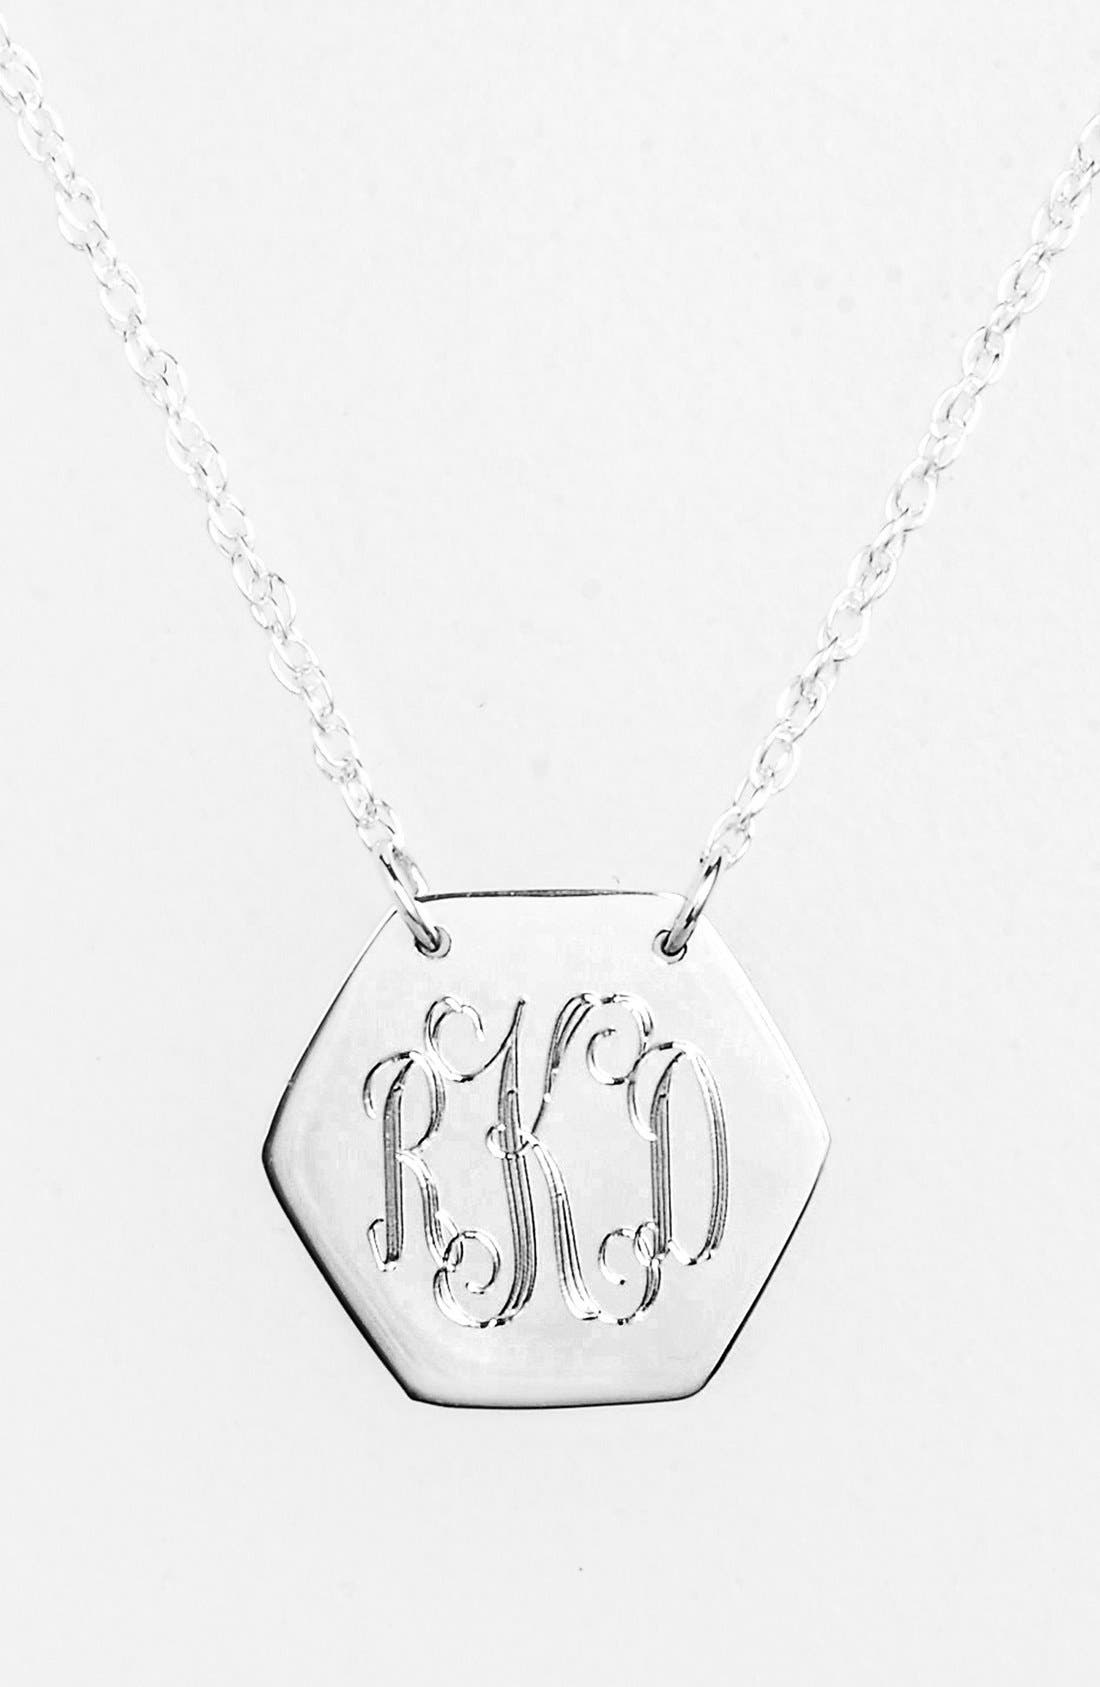 Personalize your own monogrammed necklace with this dainty engraved hexagon pendant. Hand-cut and hand-polished, this customized treasure is sure to be a delightful gift. Style Name: Jane Basch Designs Personalized Hexagon Pendant Necklace. Style Number: 1015559. Available in stores.